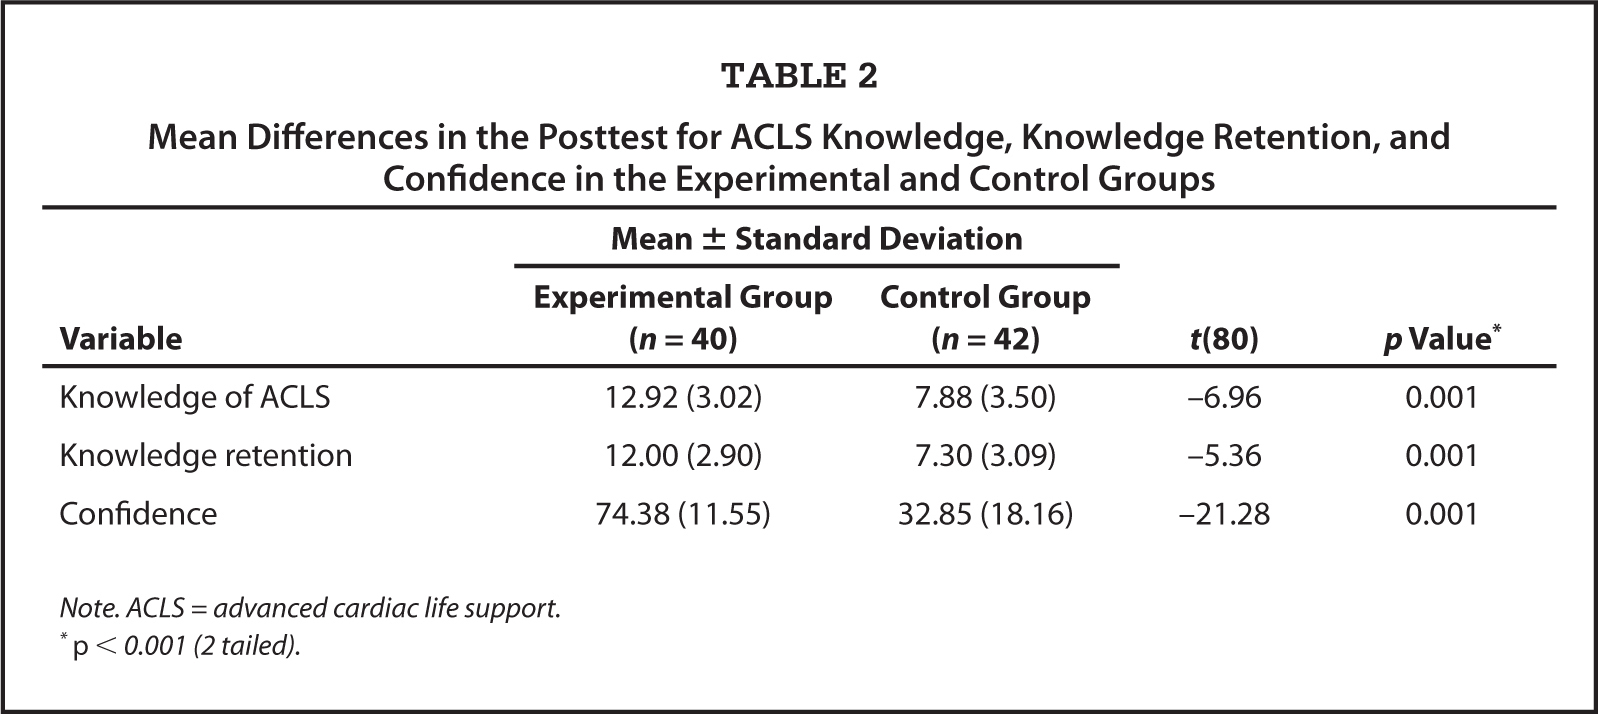 Mean Differences in the Posttest for ACLS Knowledge, Knowledge Retention, and Confidence in the Experimental and Control Groups